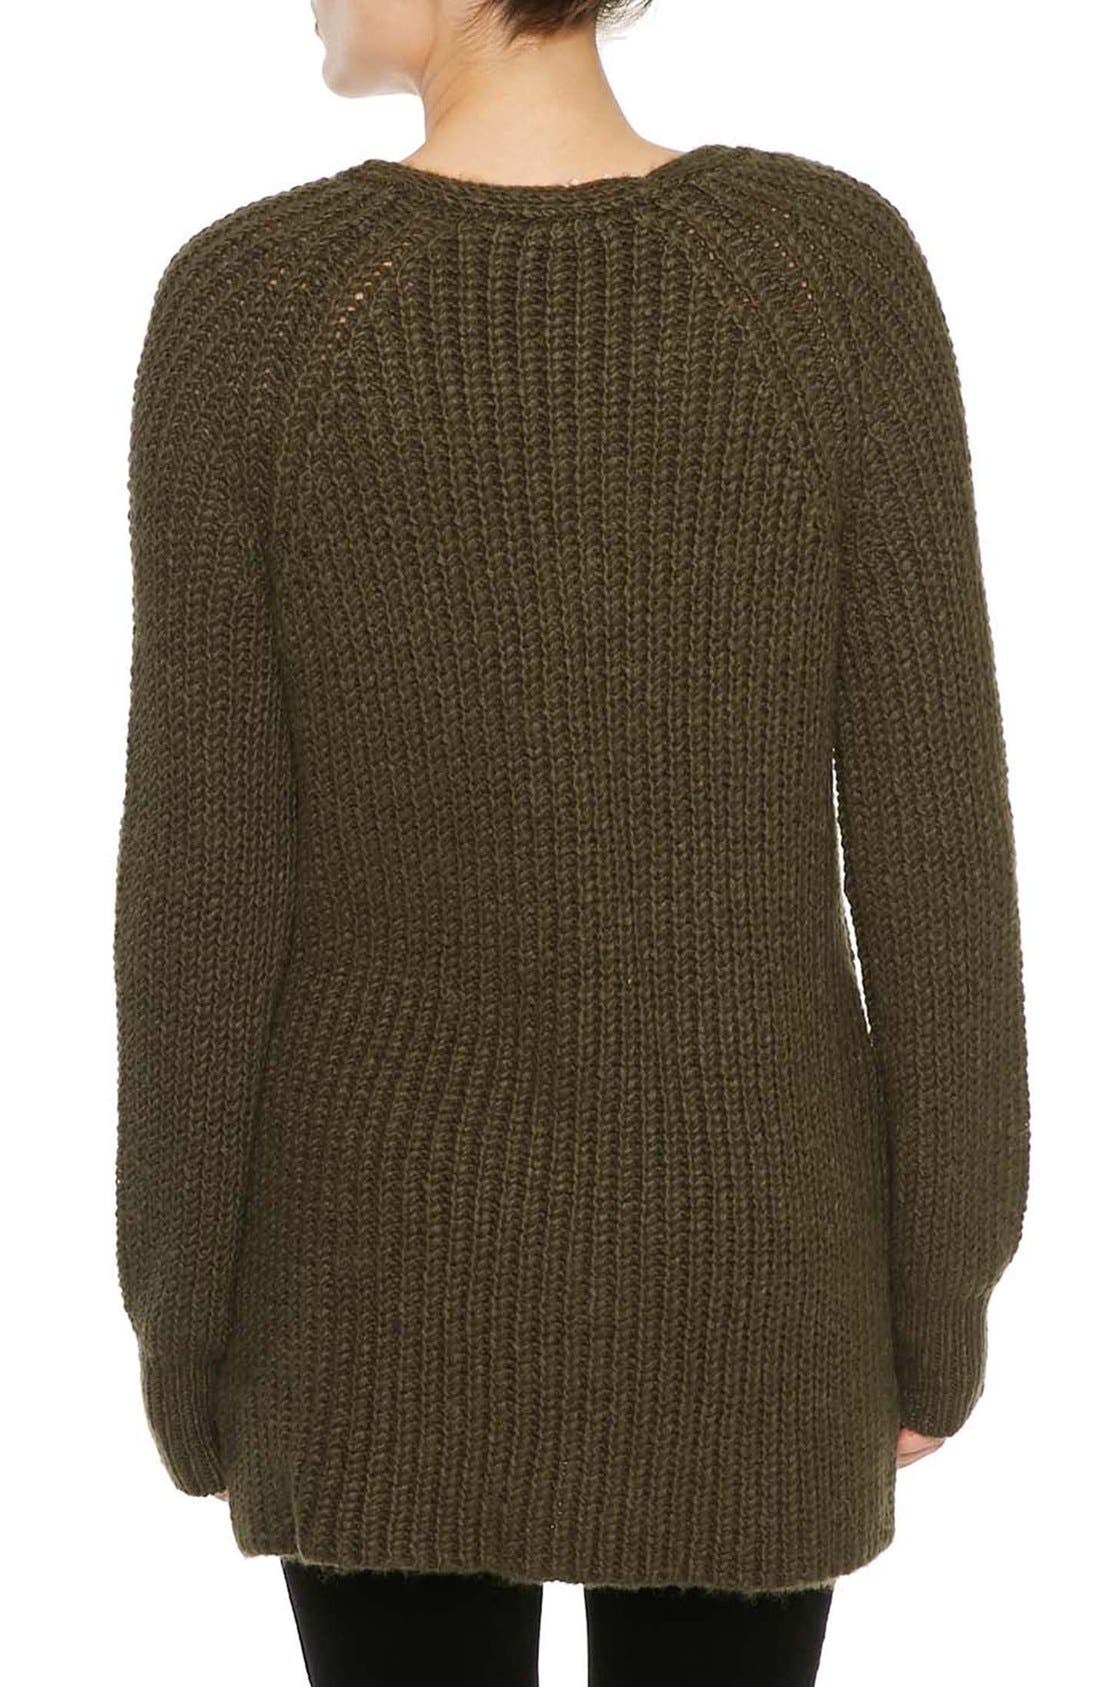 Sequoia V-Neck Sweater,                             Alternate thumbnail 2, color,                             Marled Fatigue